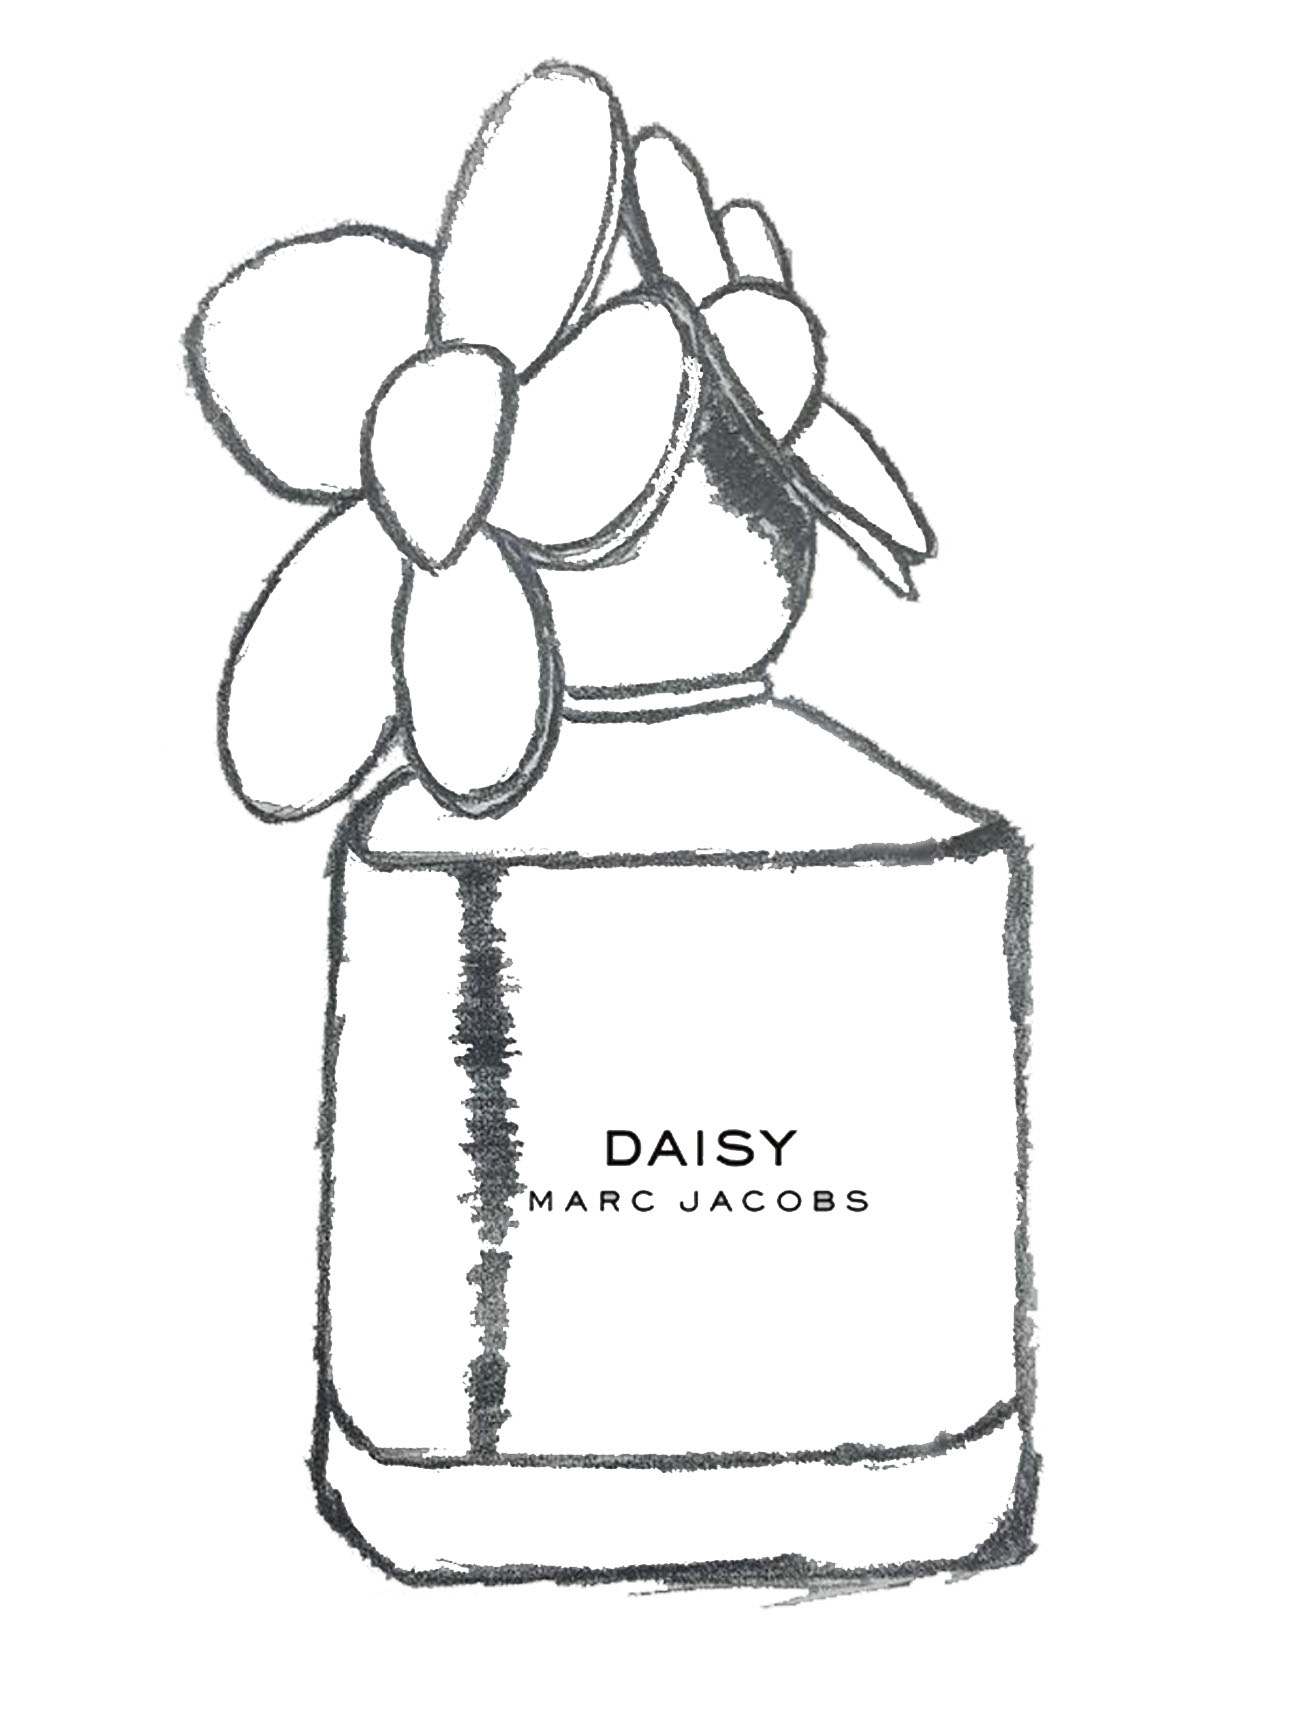 marc jacobs x nft bottle